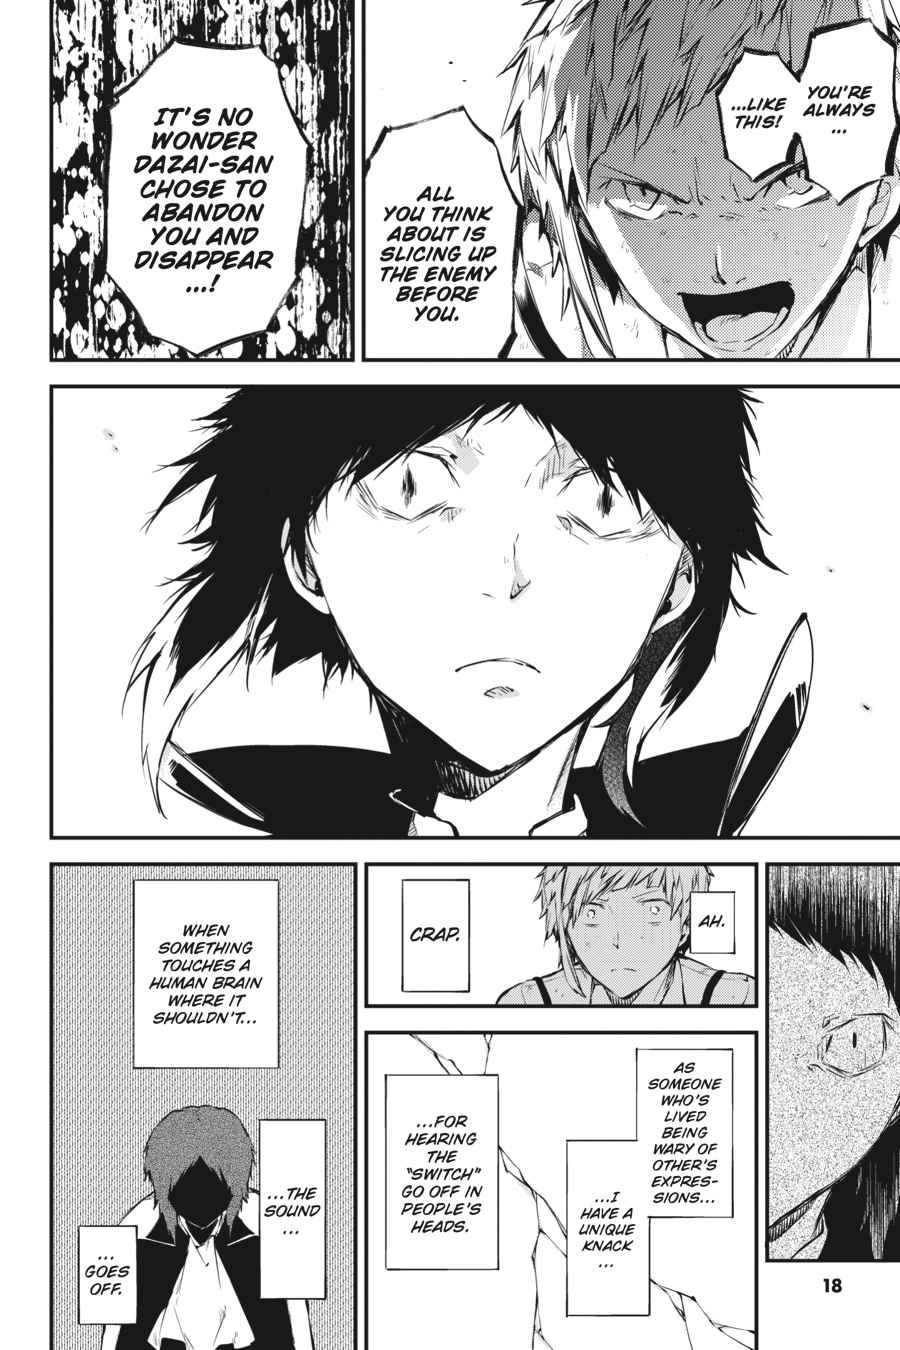 Bungou Stray Dogs Chapter 51 Page 18